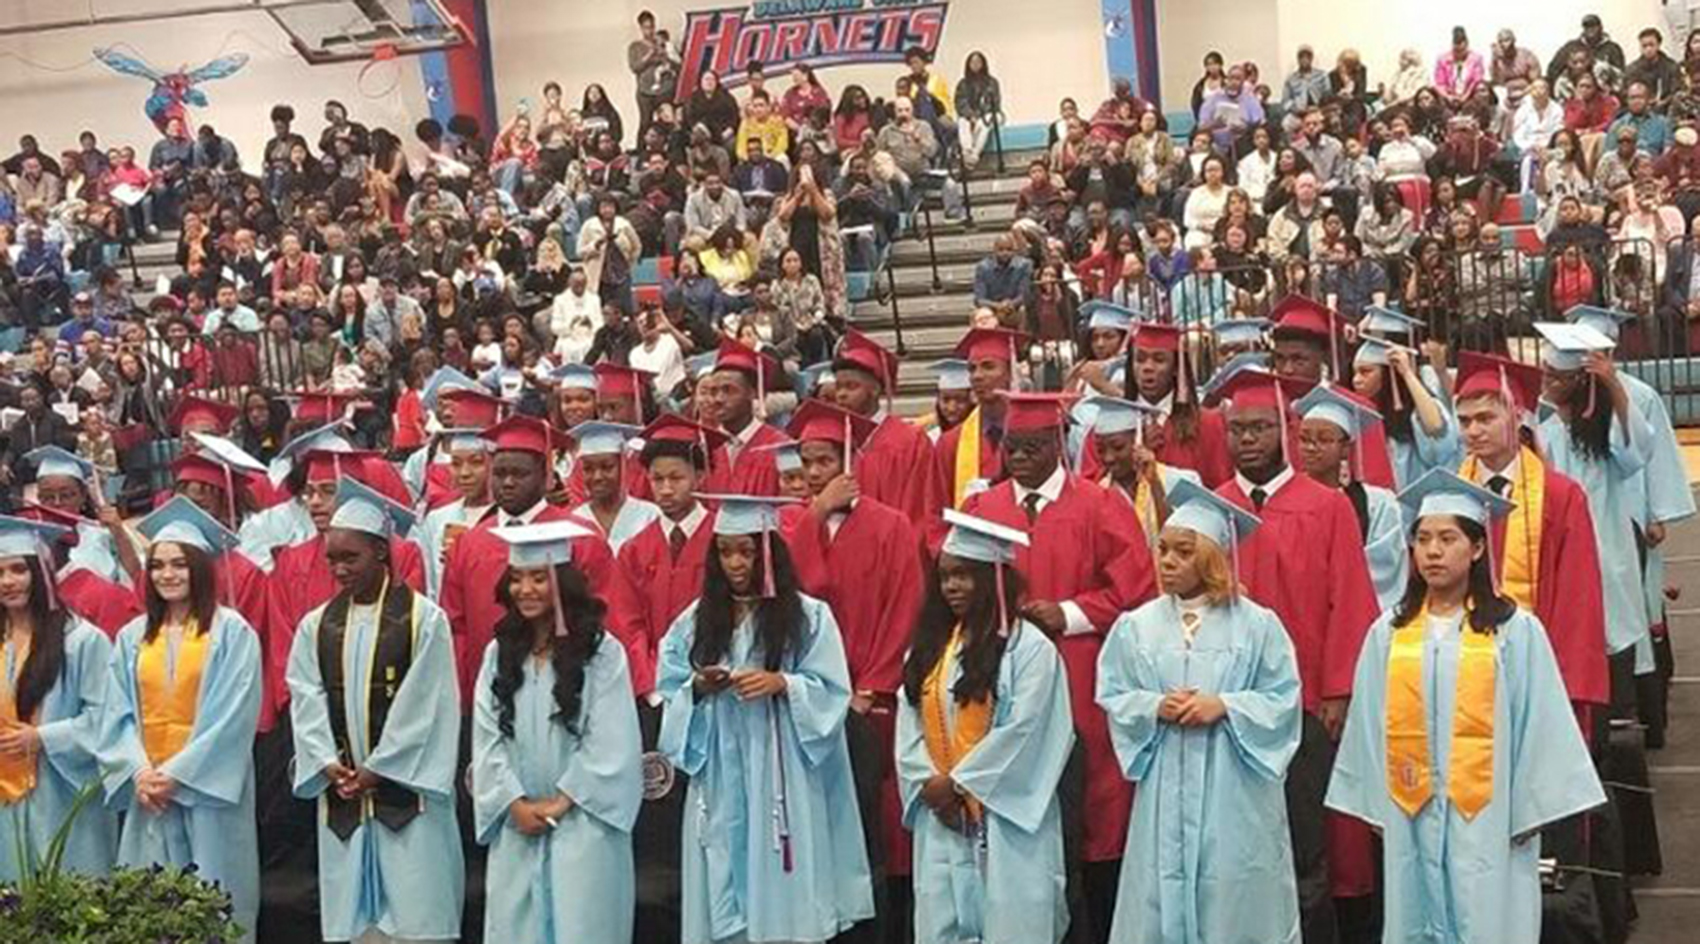 The second graduating class of the Early College High School was comprised of 67 Class of 2019 members.